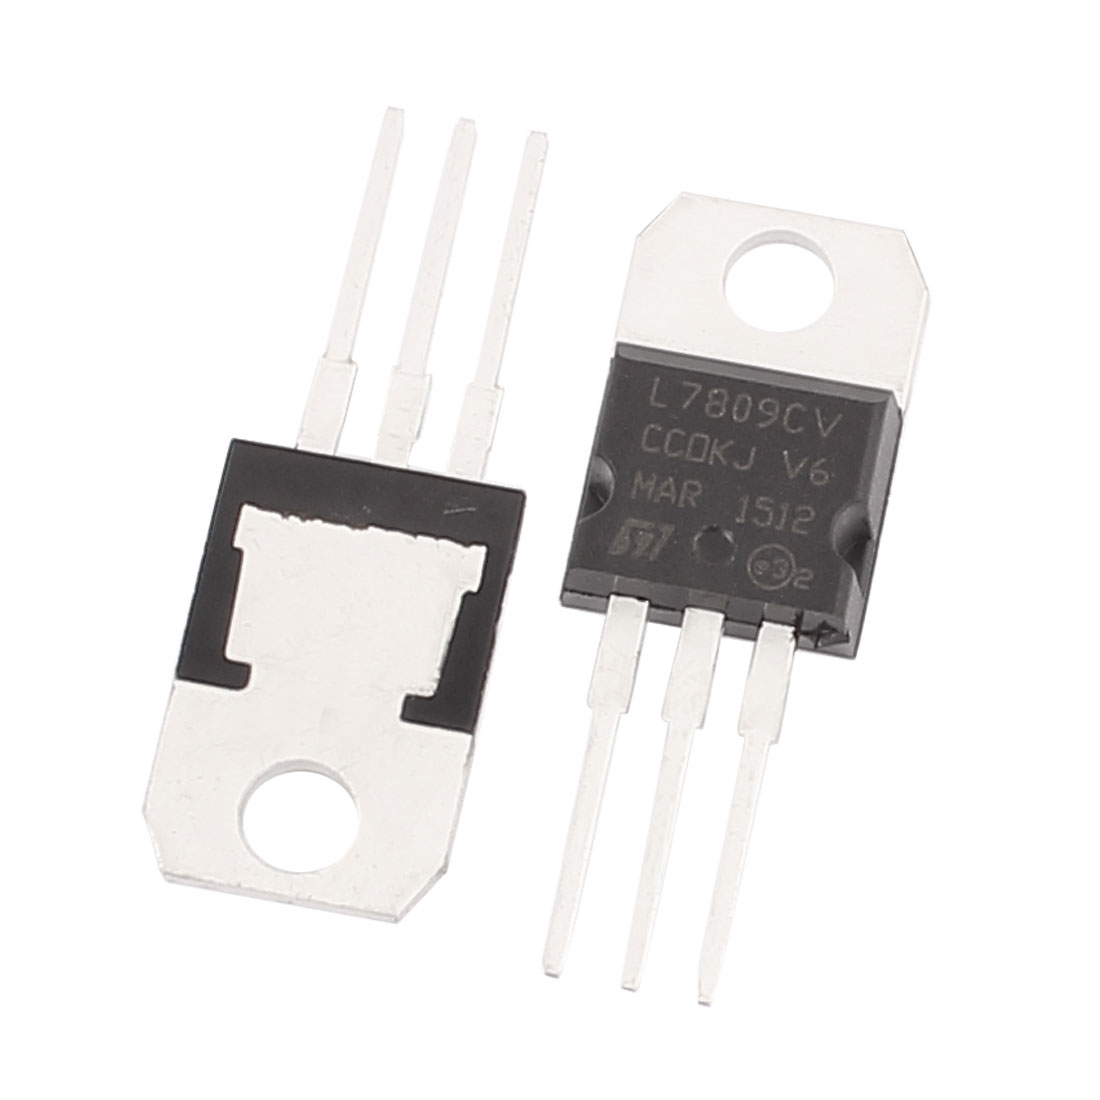 2 Pcs 9V 1A 3 Pin Terminals 7809 Positive Voltage Regulator TO-220